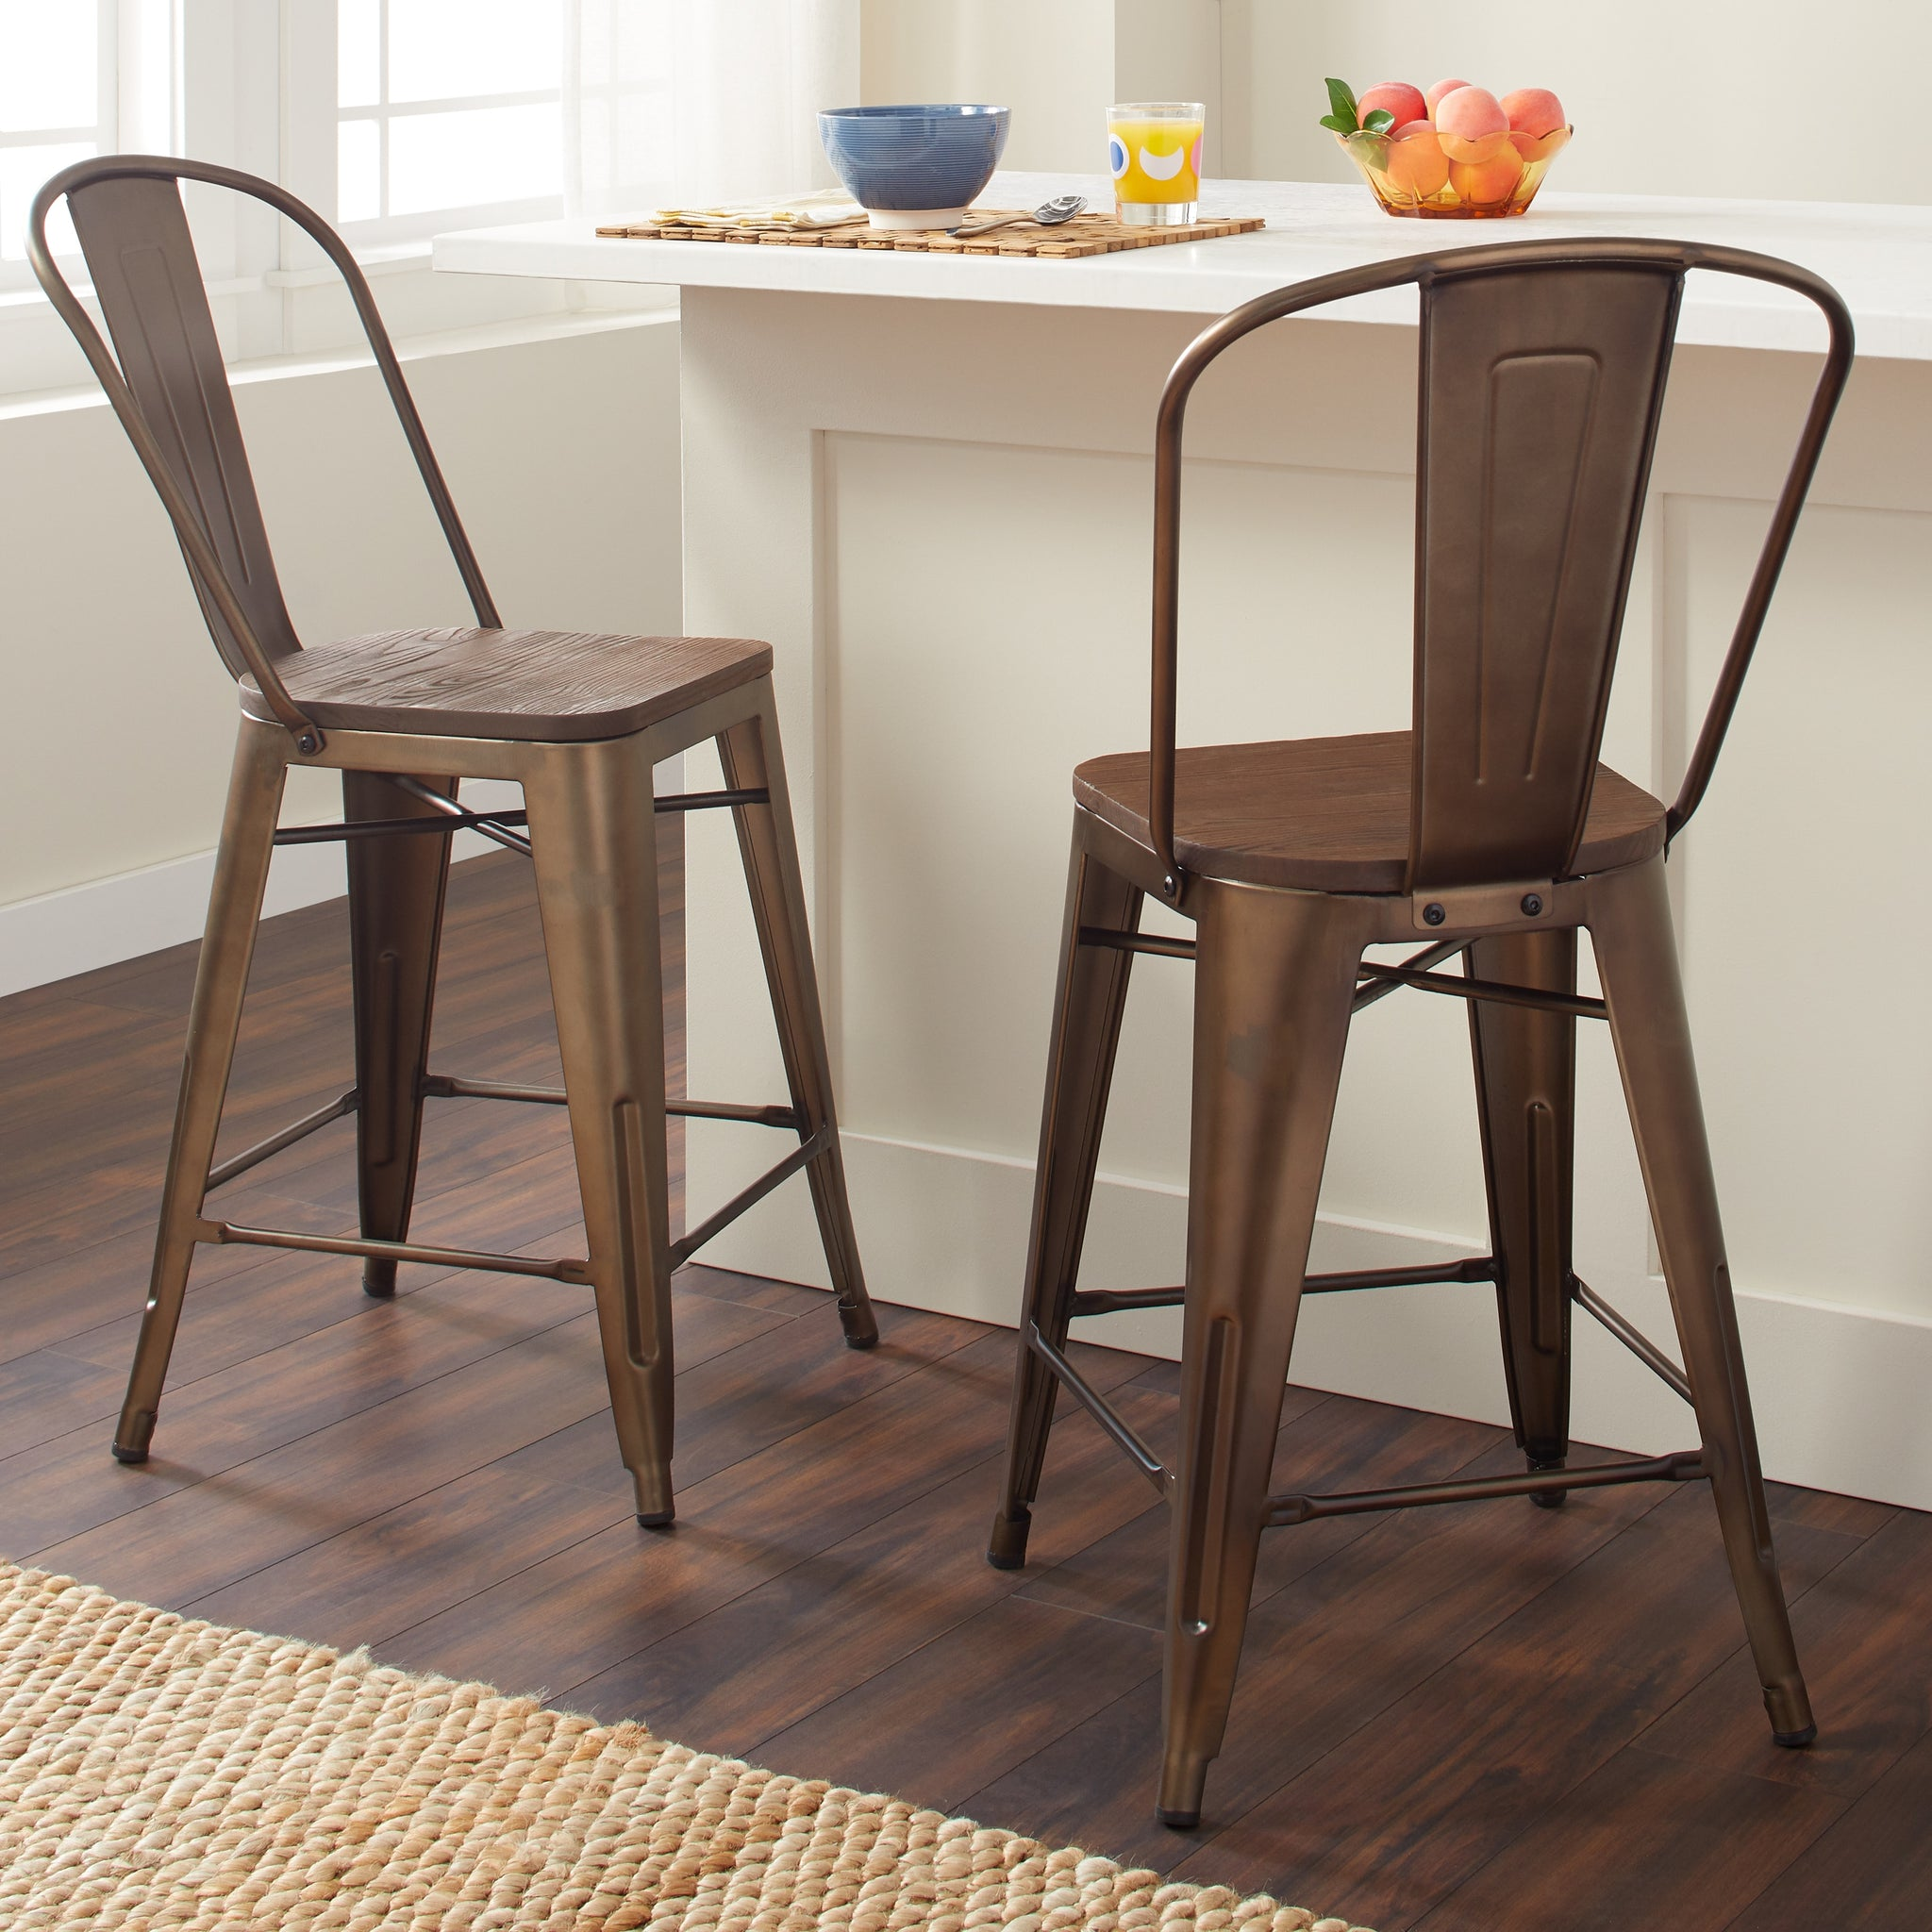 Vintage Steel Bistro Counter Stools (Set of 2)